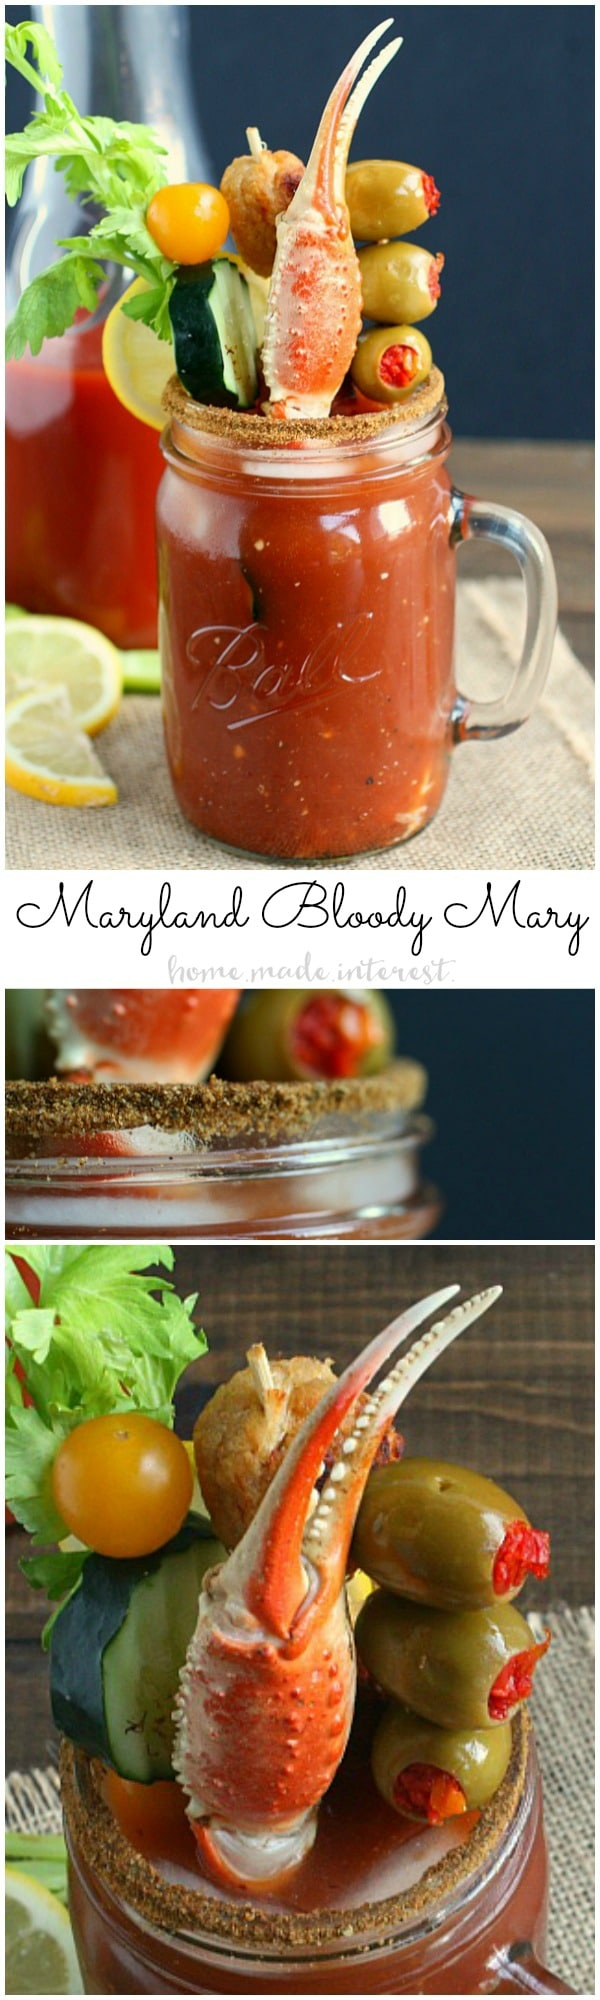 This easy and simple homemade Bloody Mary recipe is the best you have ever tried. Adding a twist to a classic recipe and turning it into a Maryland Bloody Mary. A Bloody Mary bar would be a great brunch idea for a wedding or vacation.